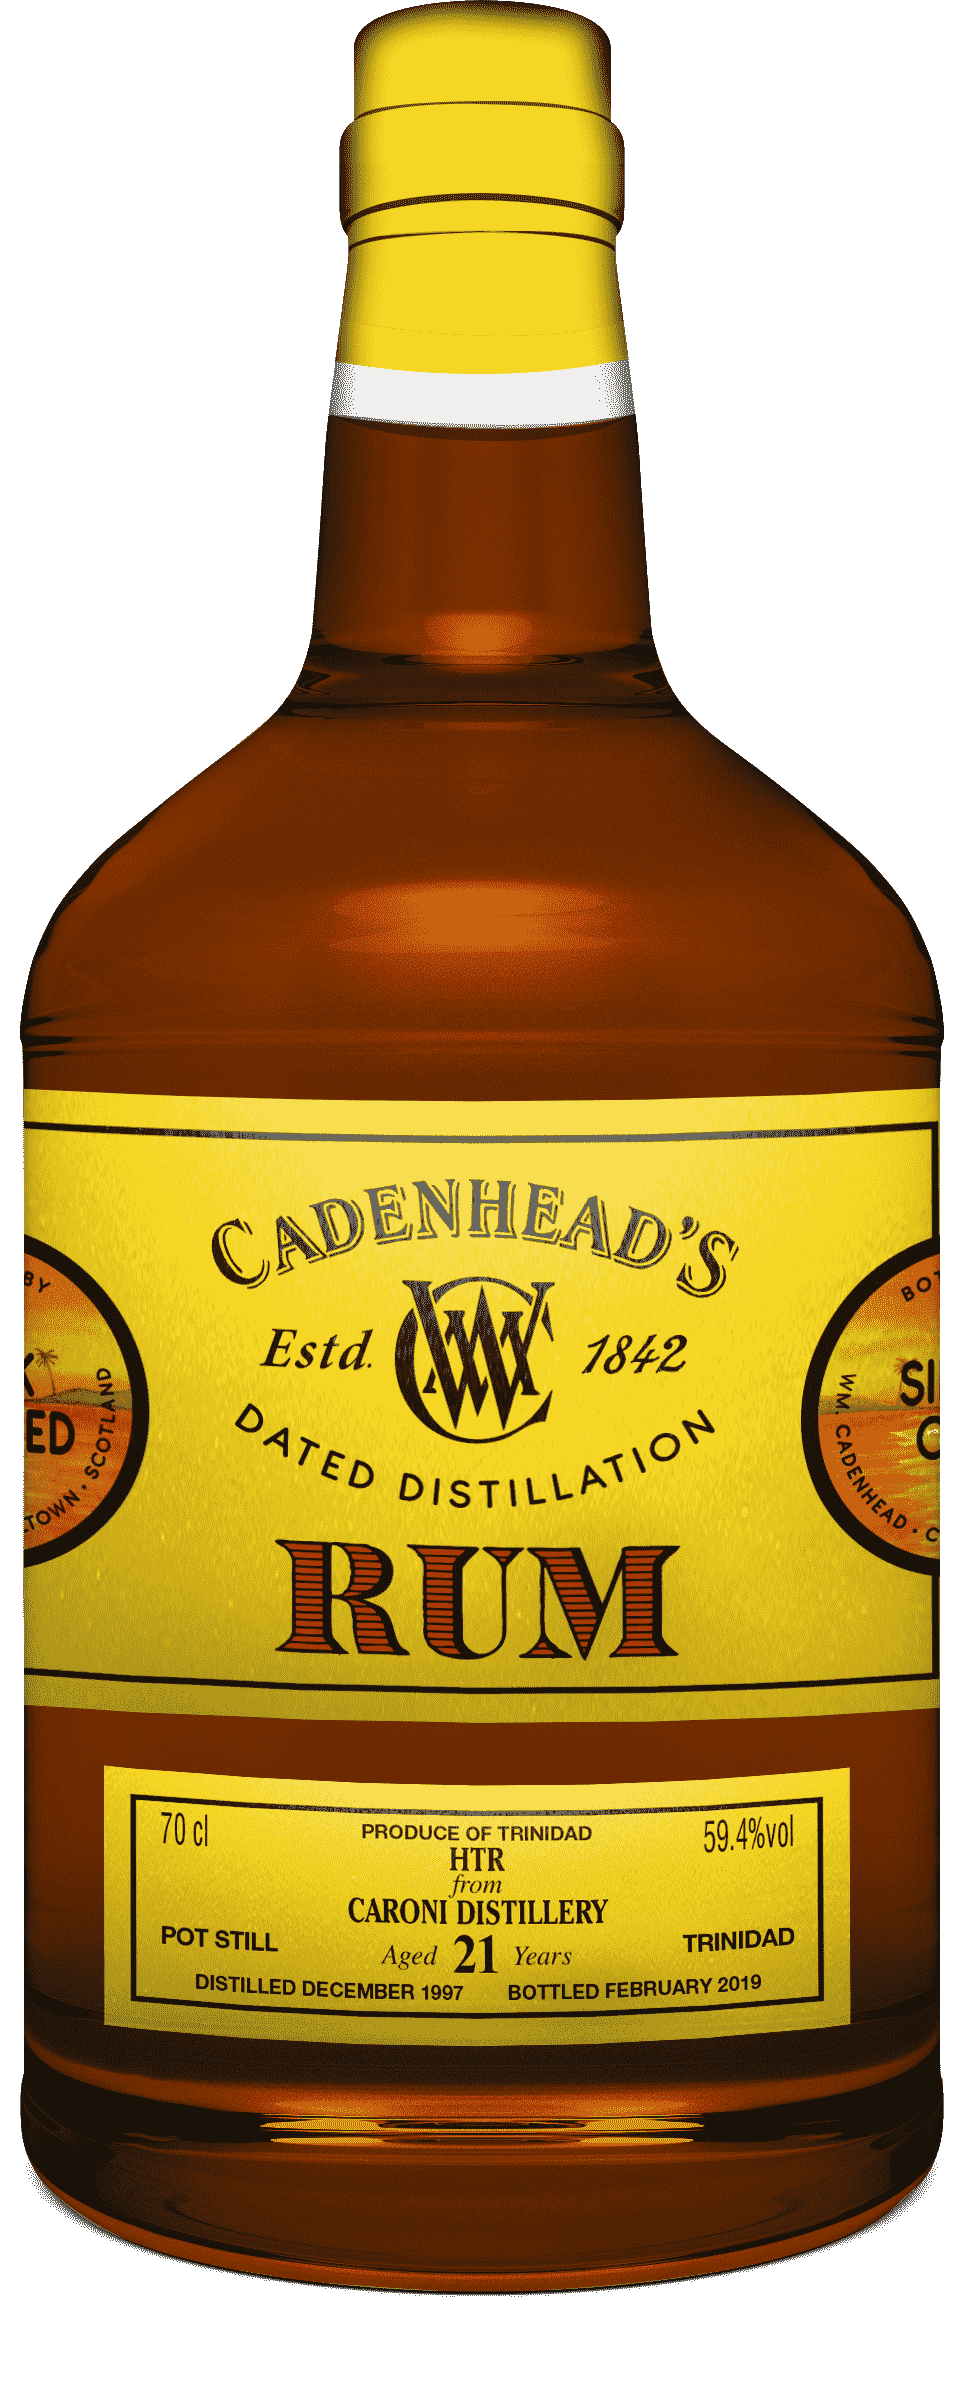 A Bottle of Dated-Distilled-Trinidad-59.4